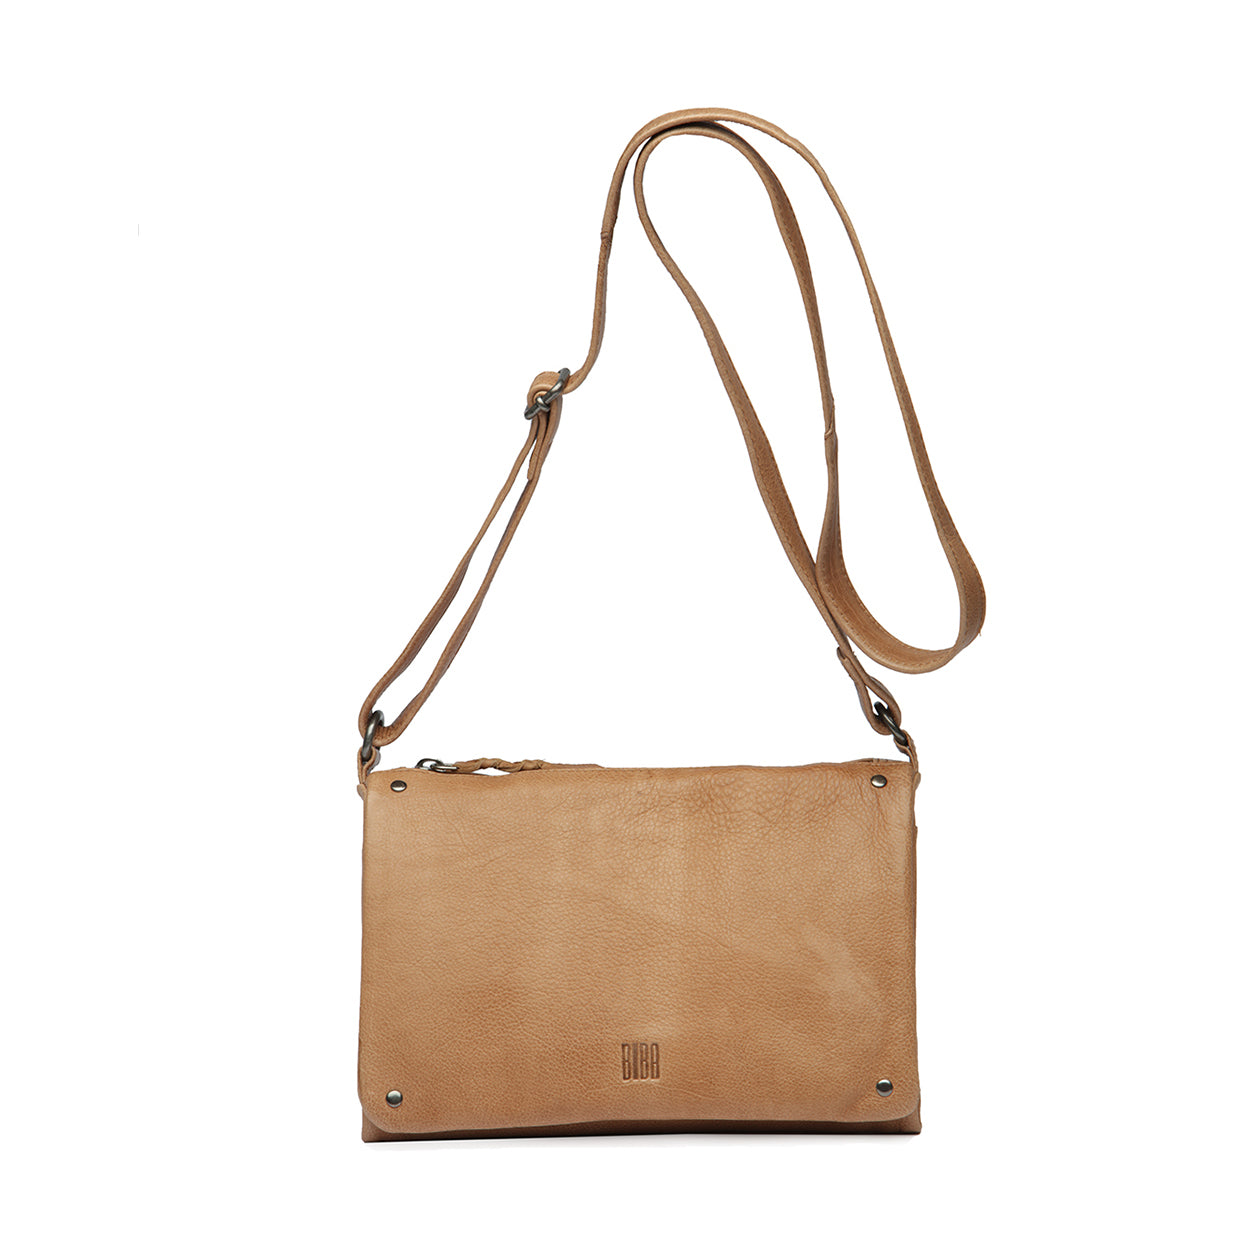 Veske Natalia. Cross Bag, medium. Tan